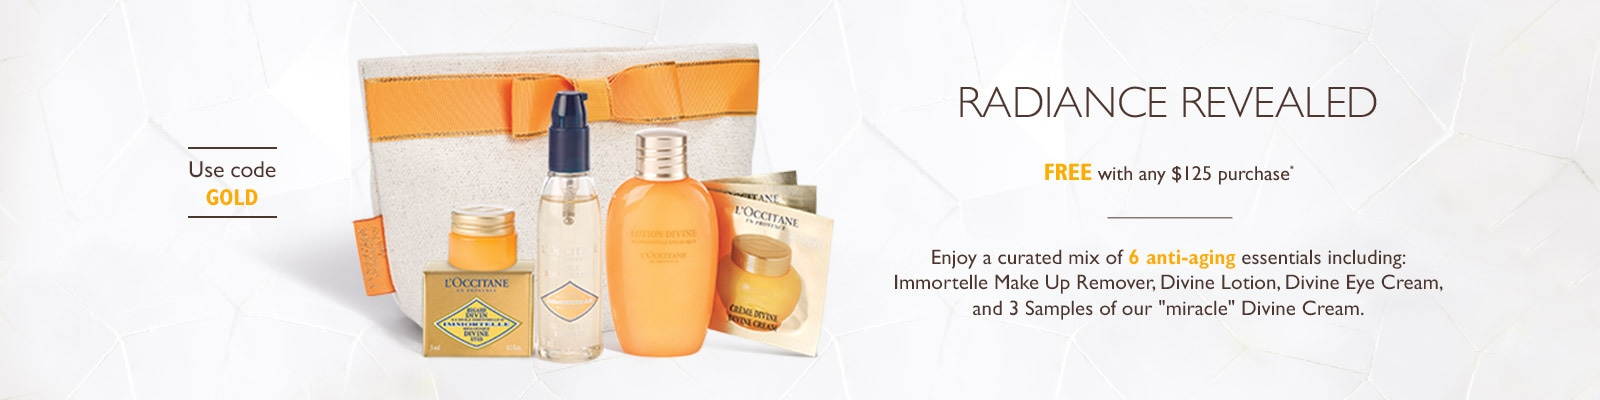 Receive a free 6- piece bonus gift with your $125 L'Occitane purchase